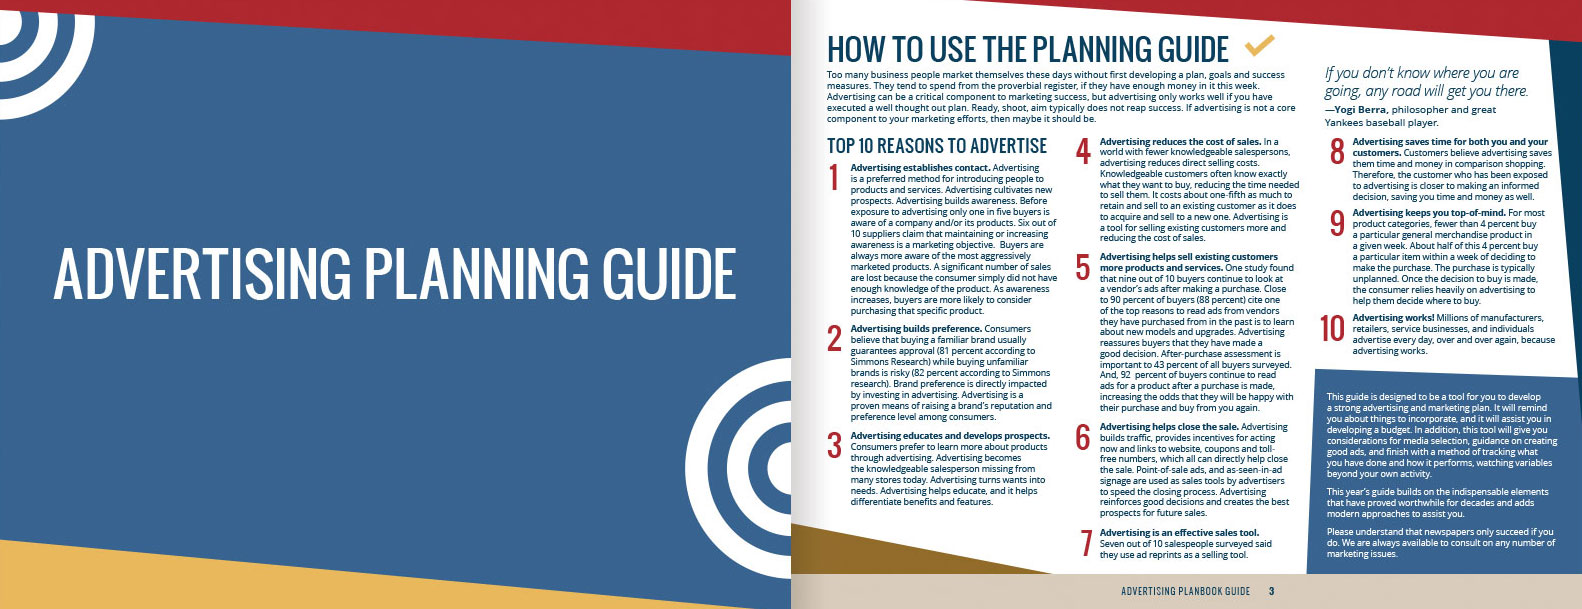 Planbook Guide